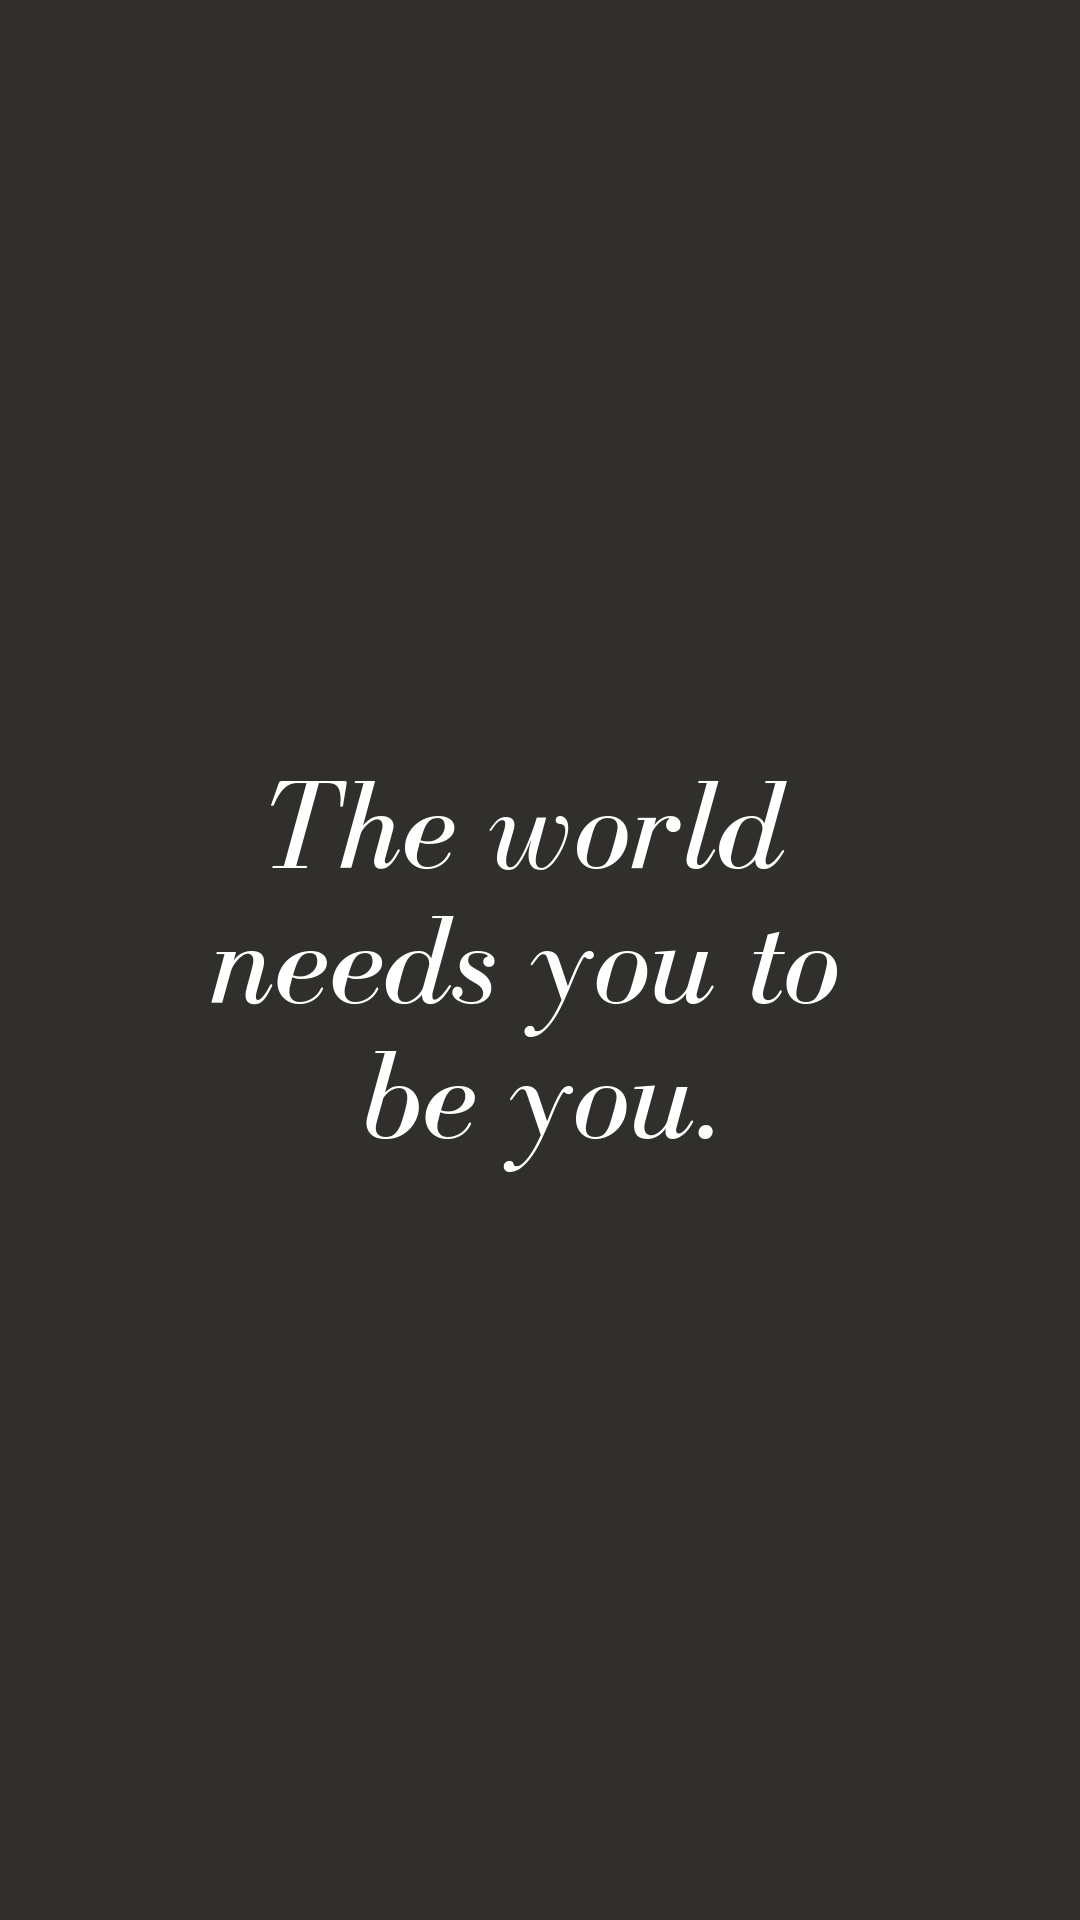 The World Needs You to Be You | Motivational, Inspiring Quotes | Free Phone Background | Miranda Schroeder Blog